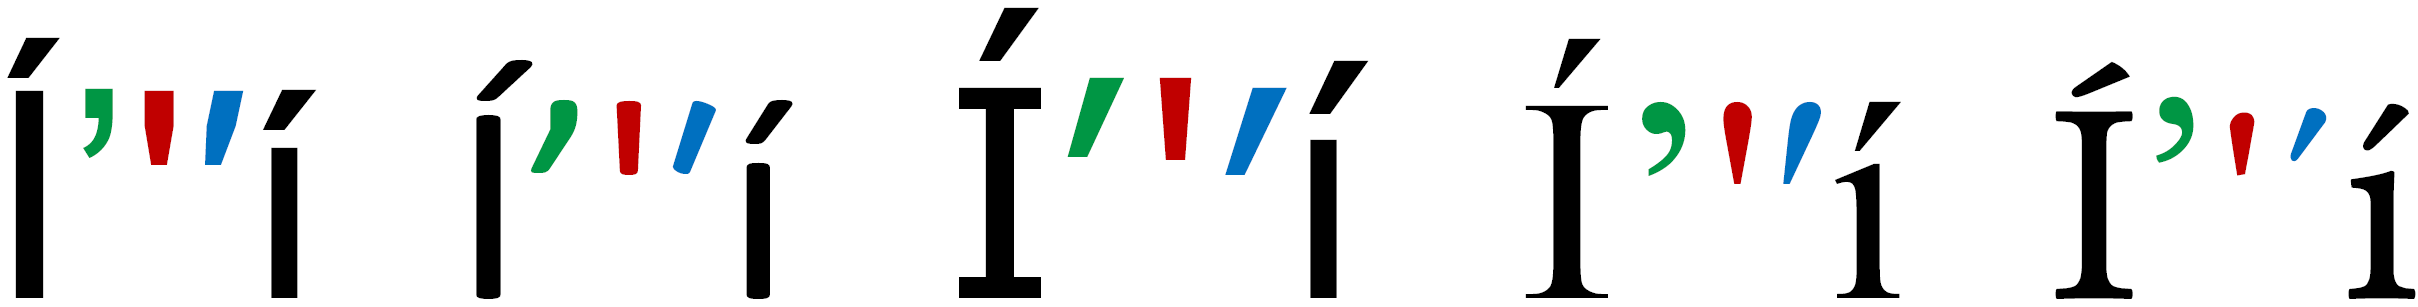 Typographic (green) and typewriter (red) apostrophe, followed by a prime (blue), between letters Í and í (using acute accent), in writing